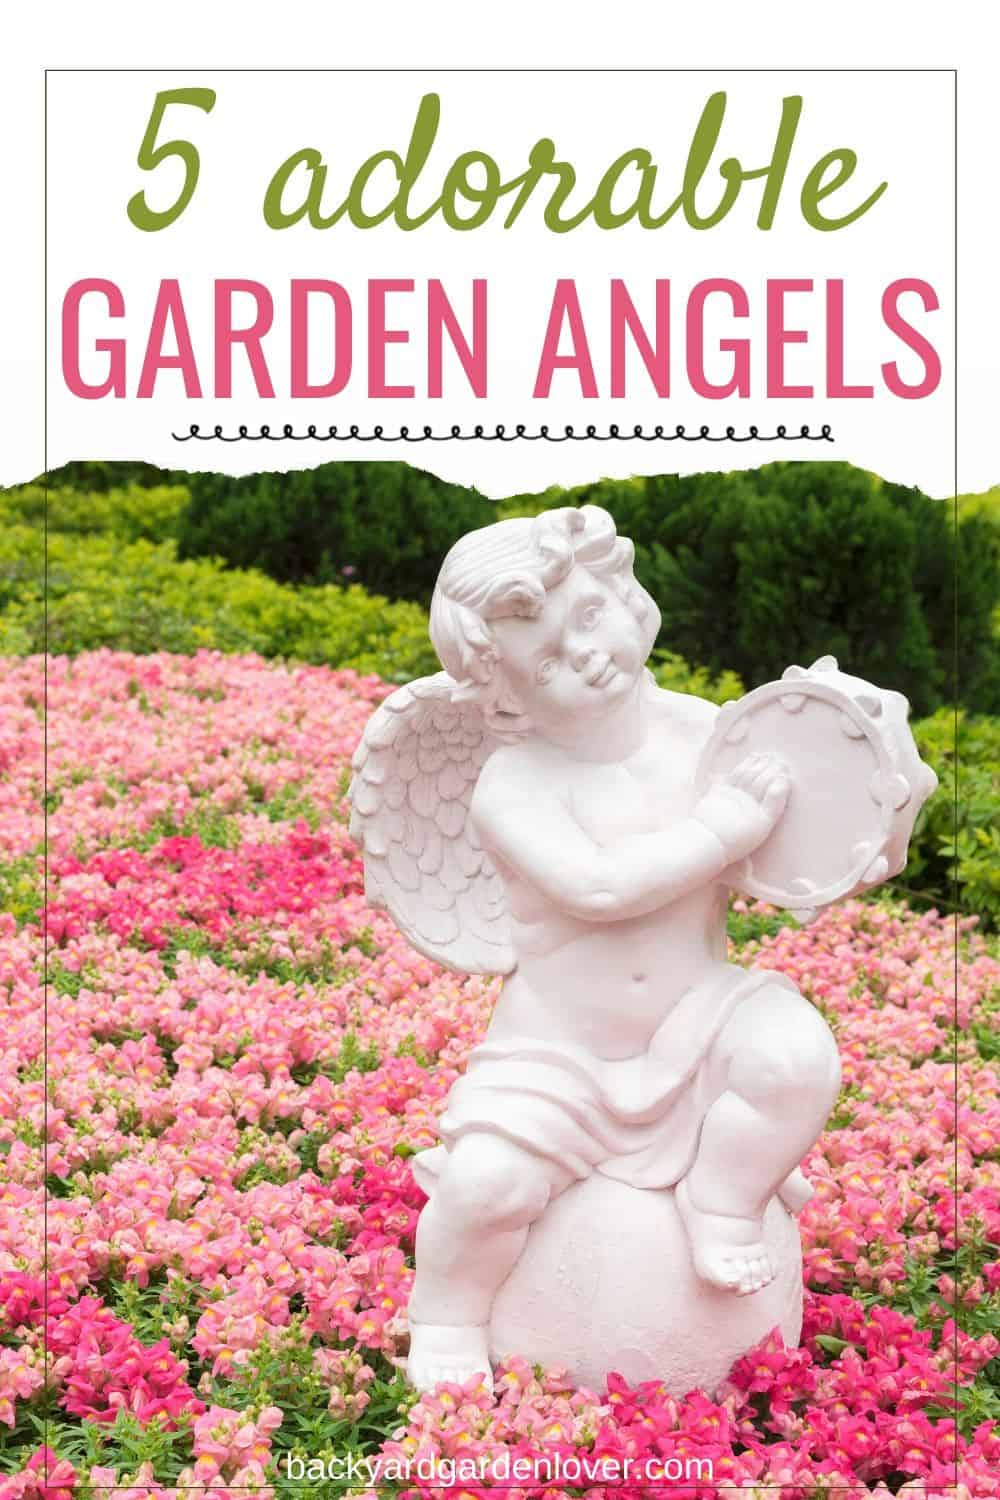 White garden angel with pink flowers background